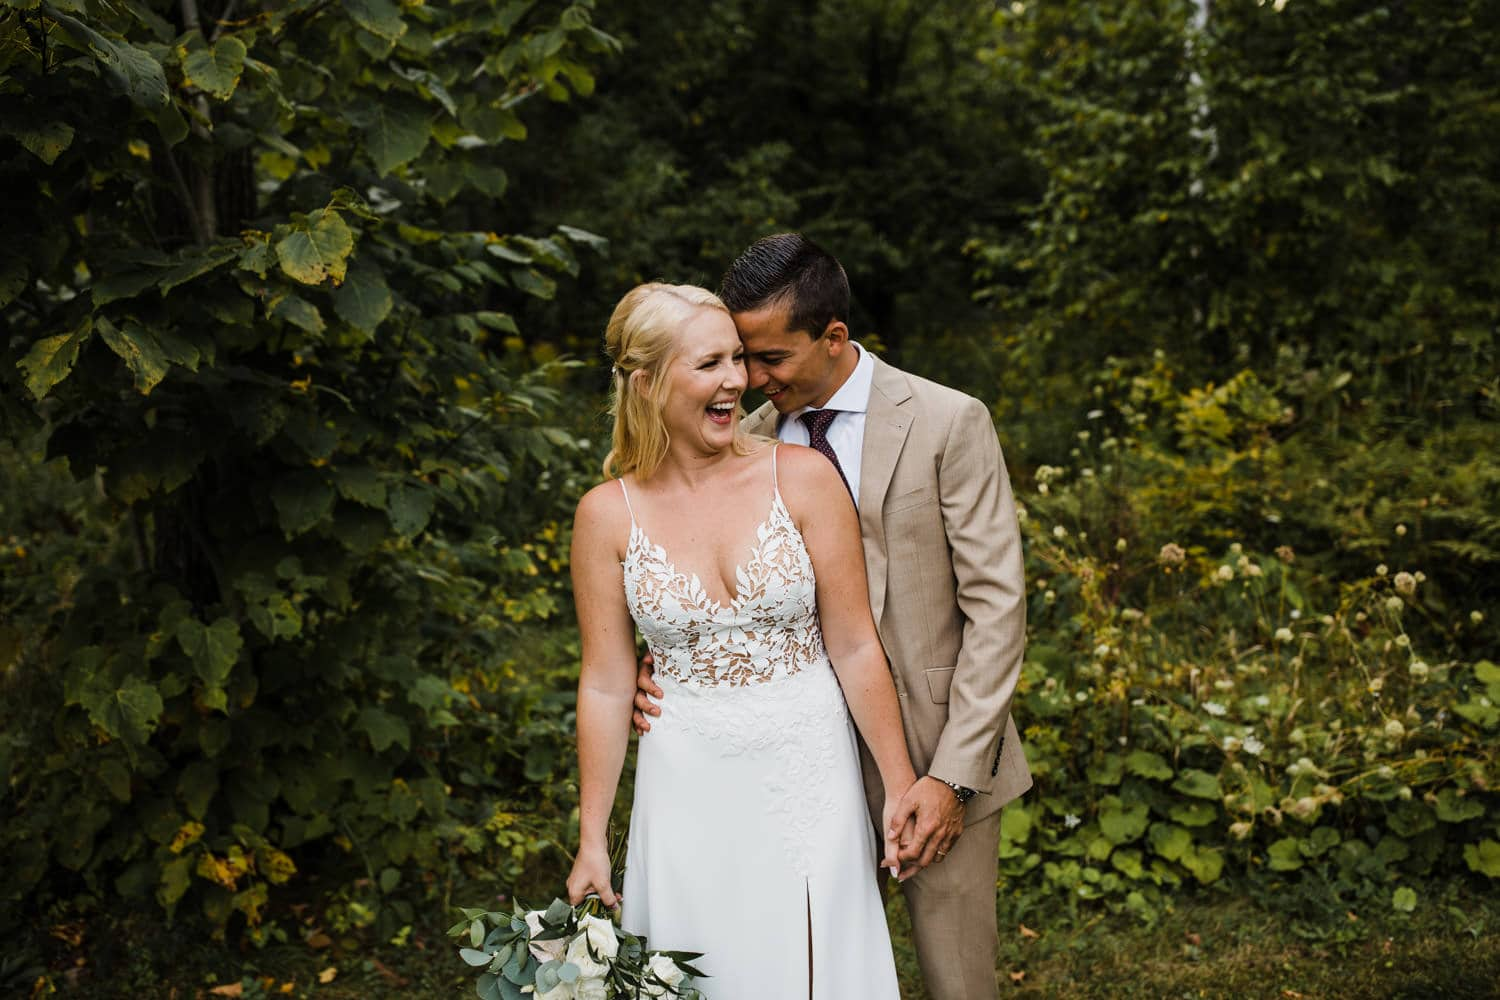 bride and groom laugh together outside - ottawa wedding photographer